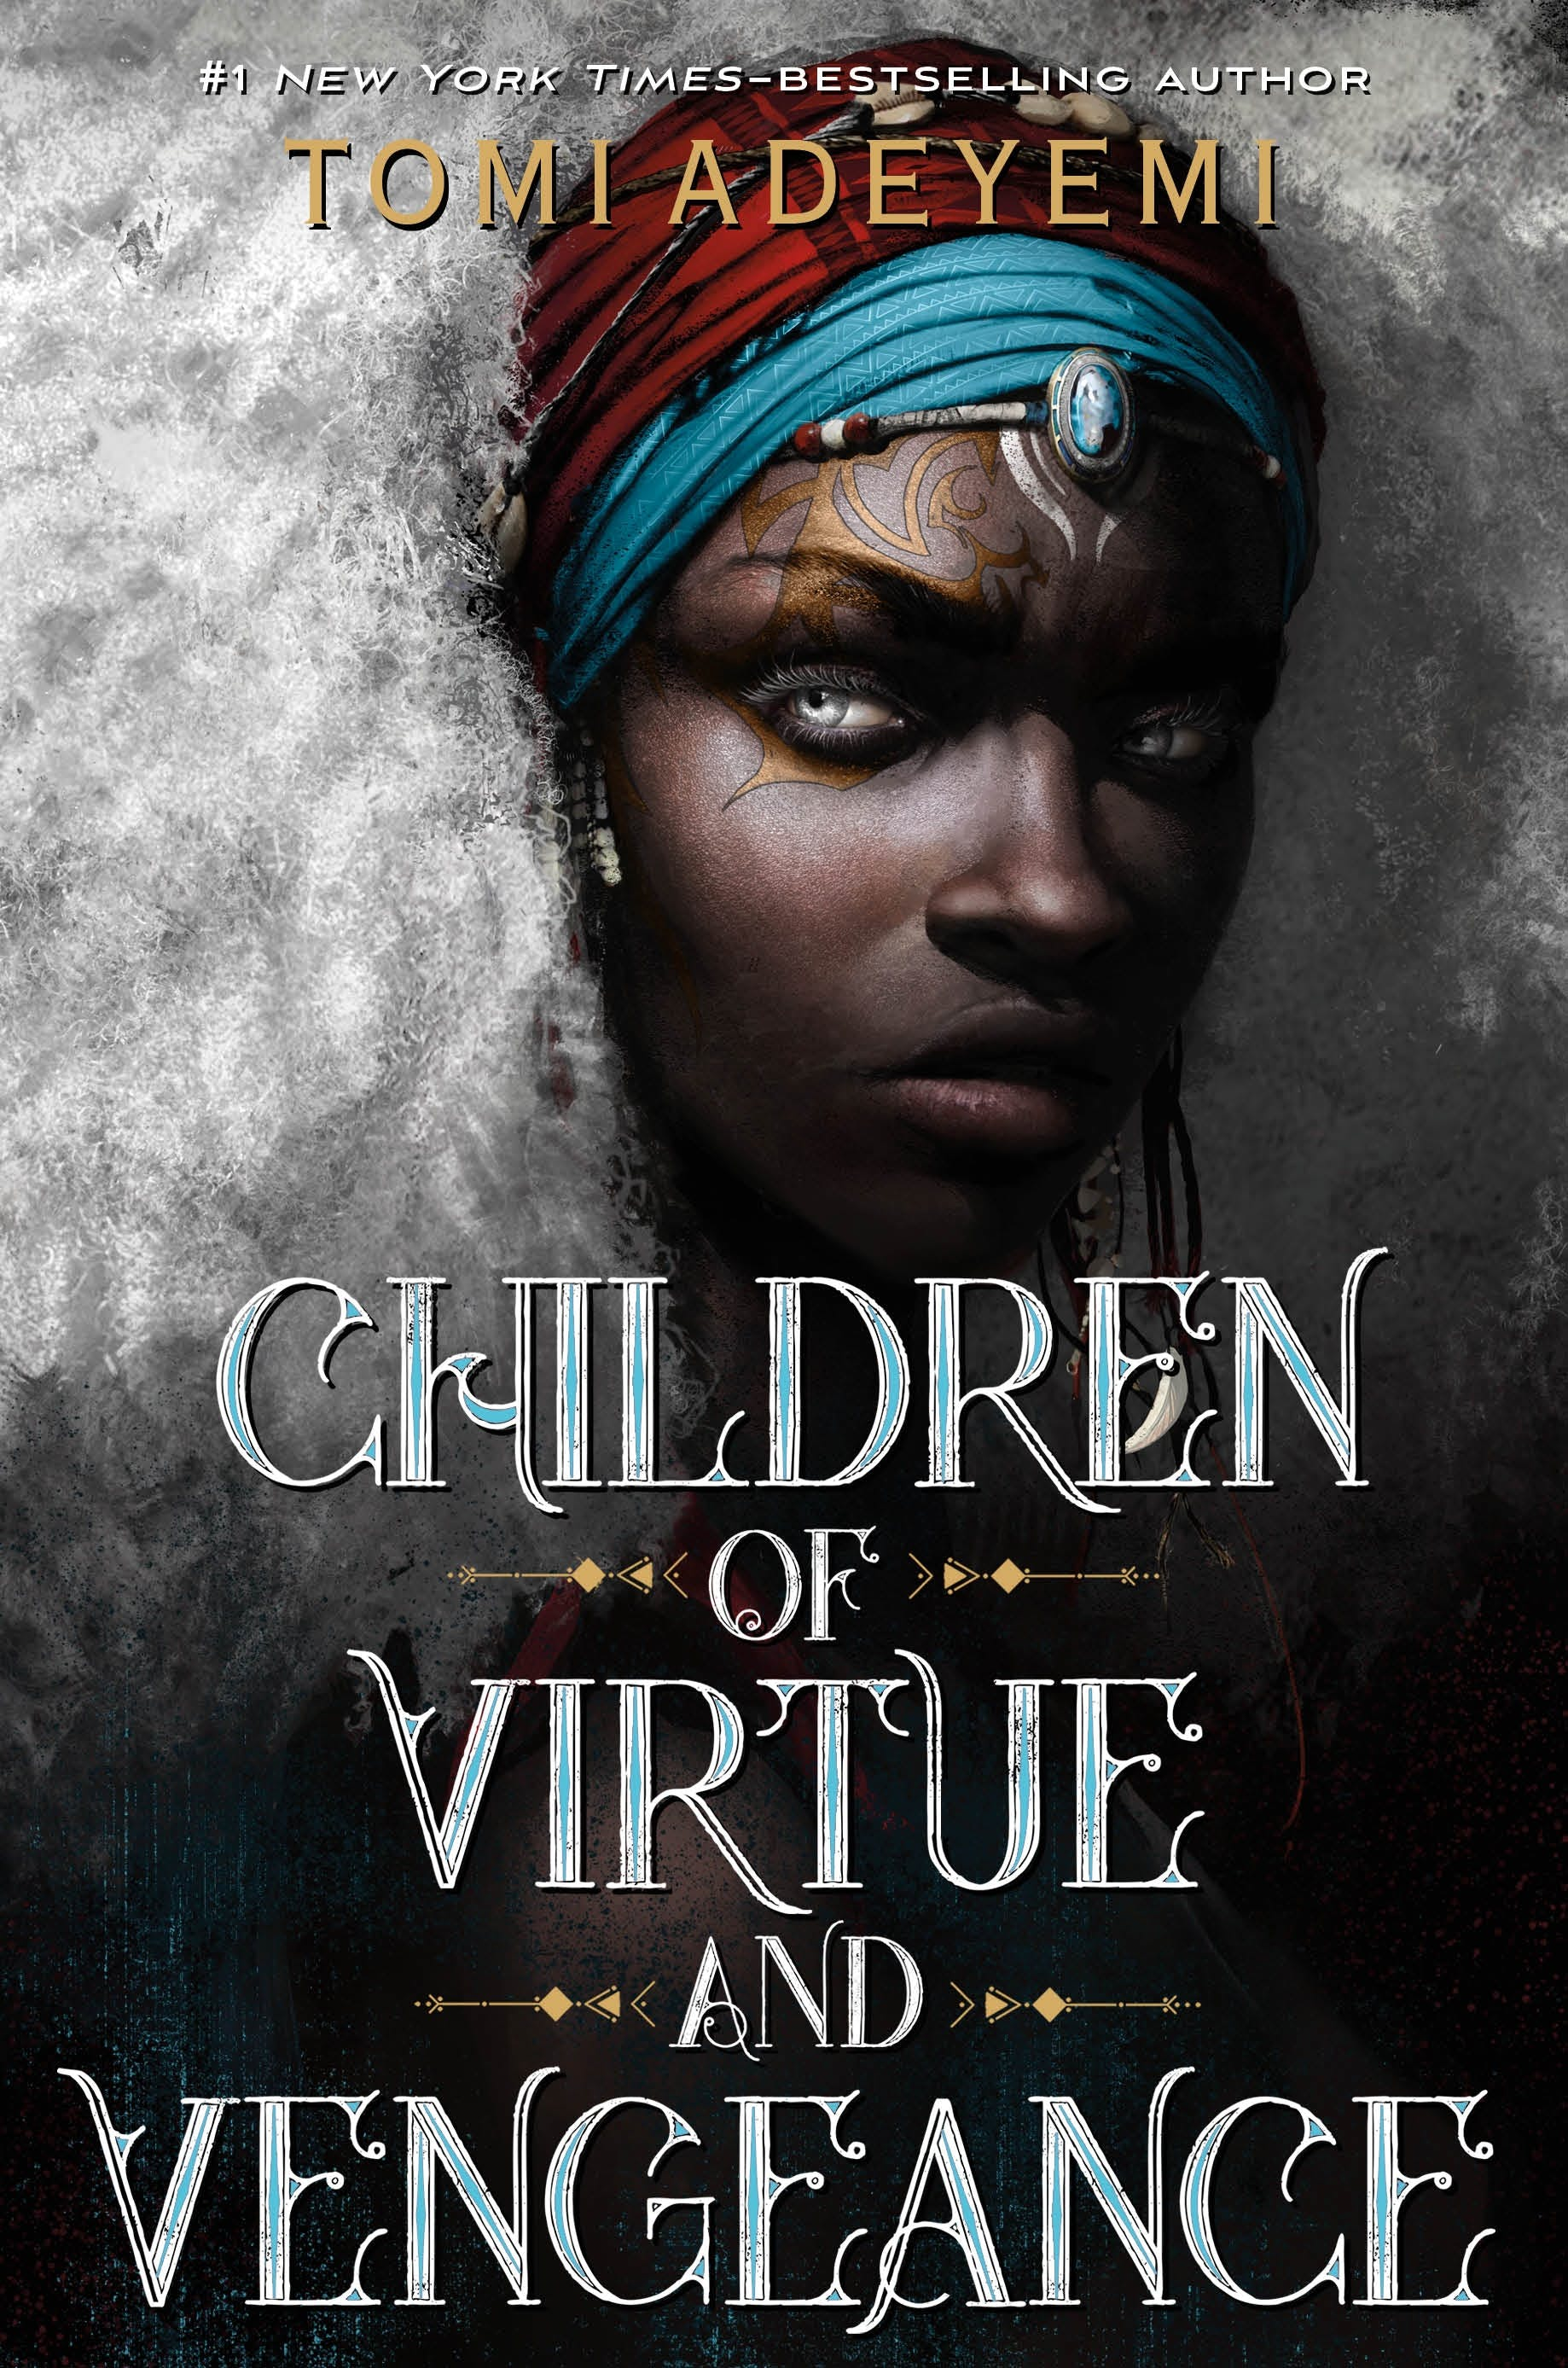 Image of Children of Virtue and Vengeance